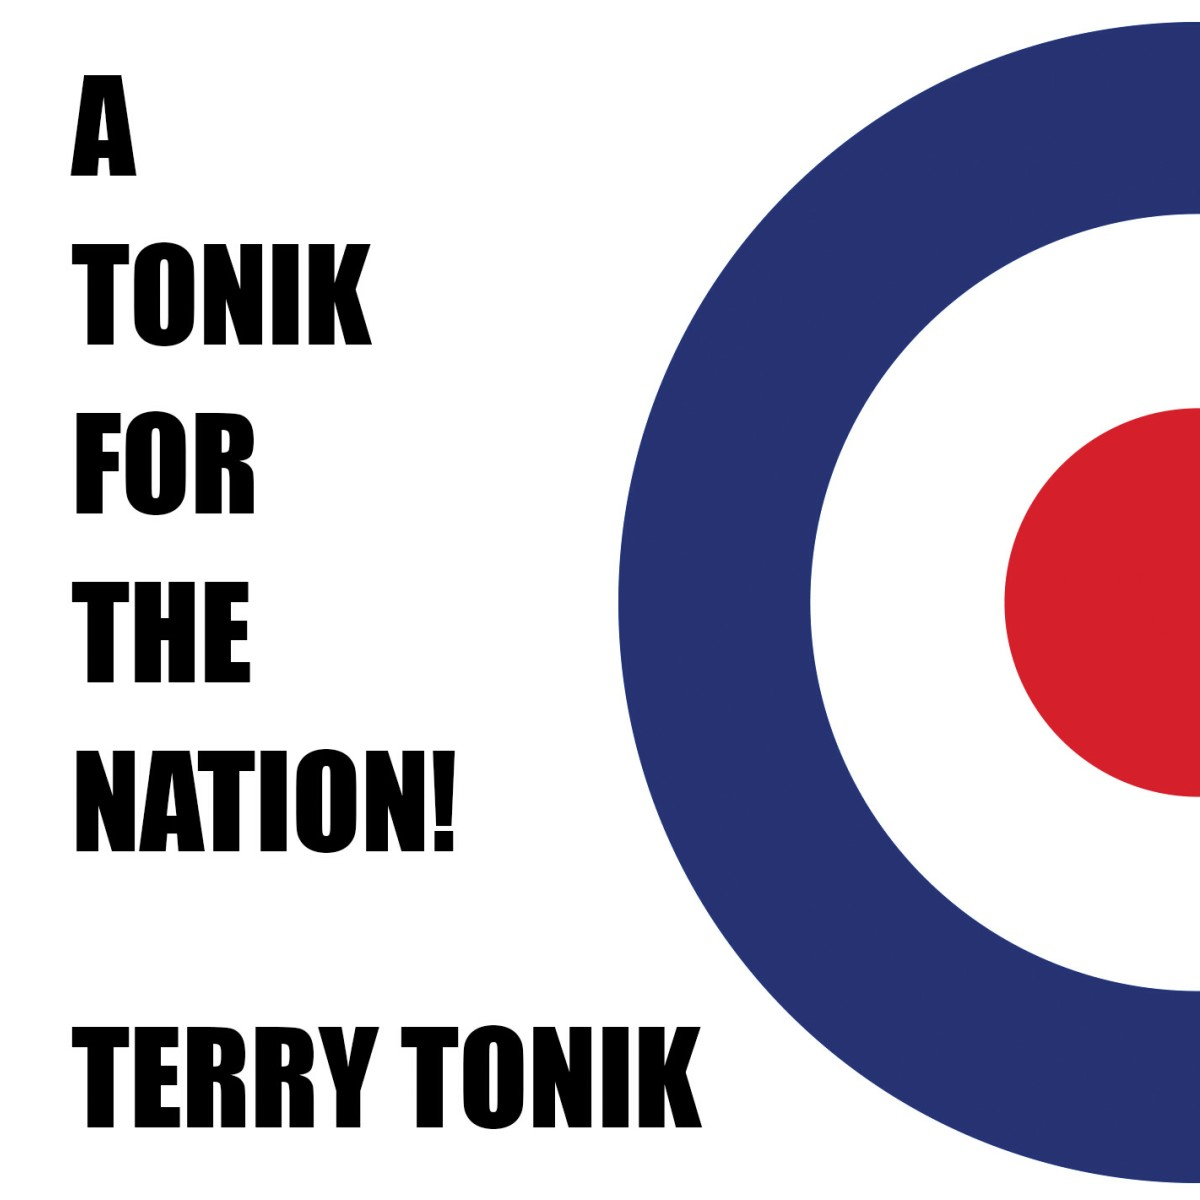 a tonik for the nation - terry tonik